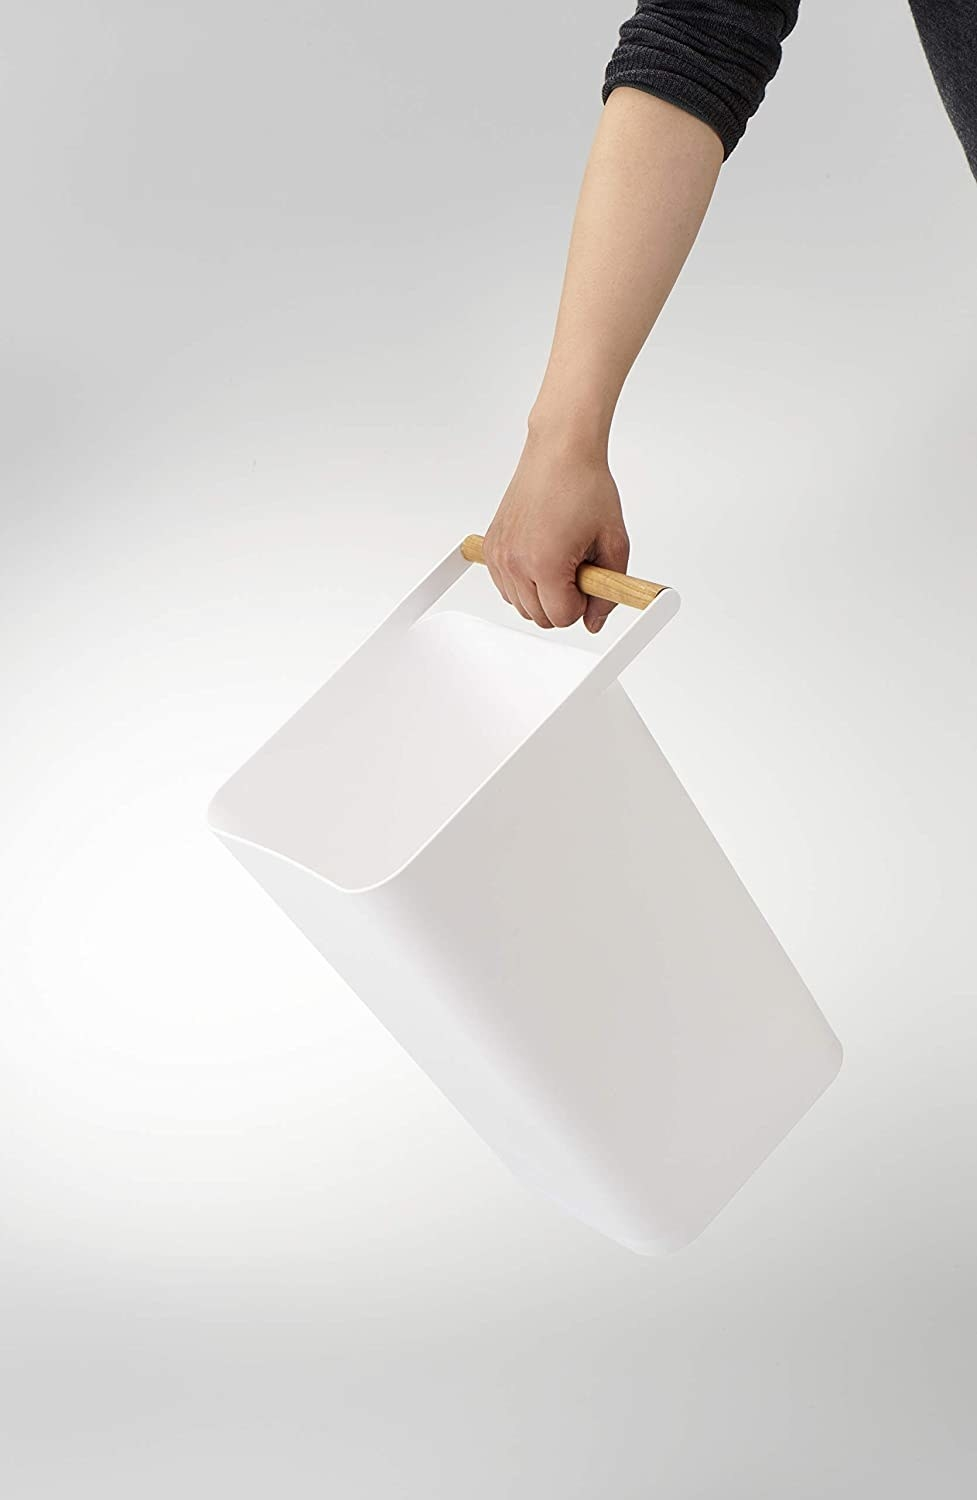 A white square shaped trashcan with a wooden handle on the lid